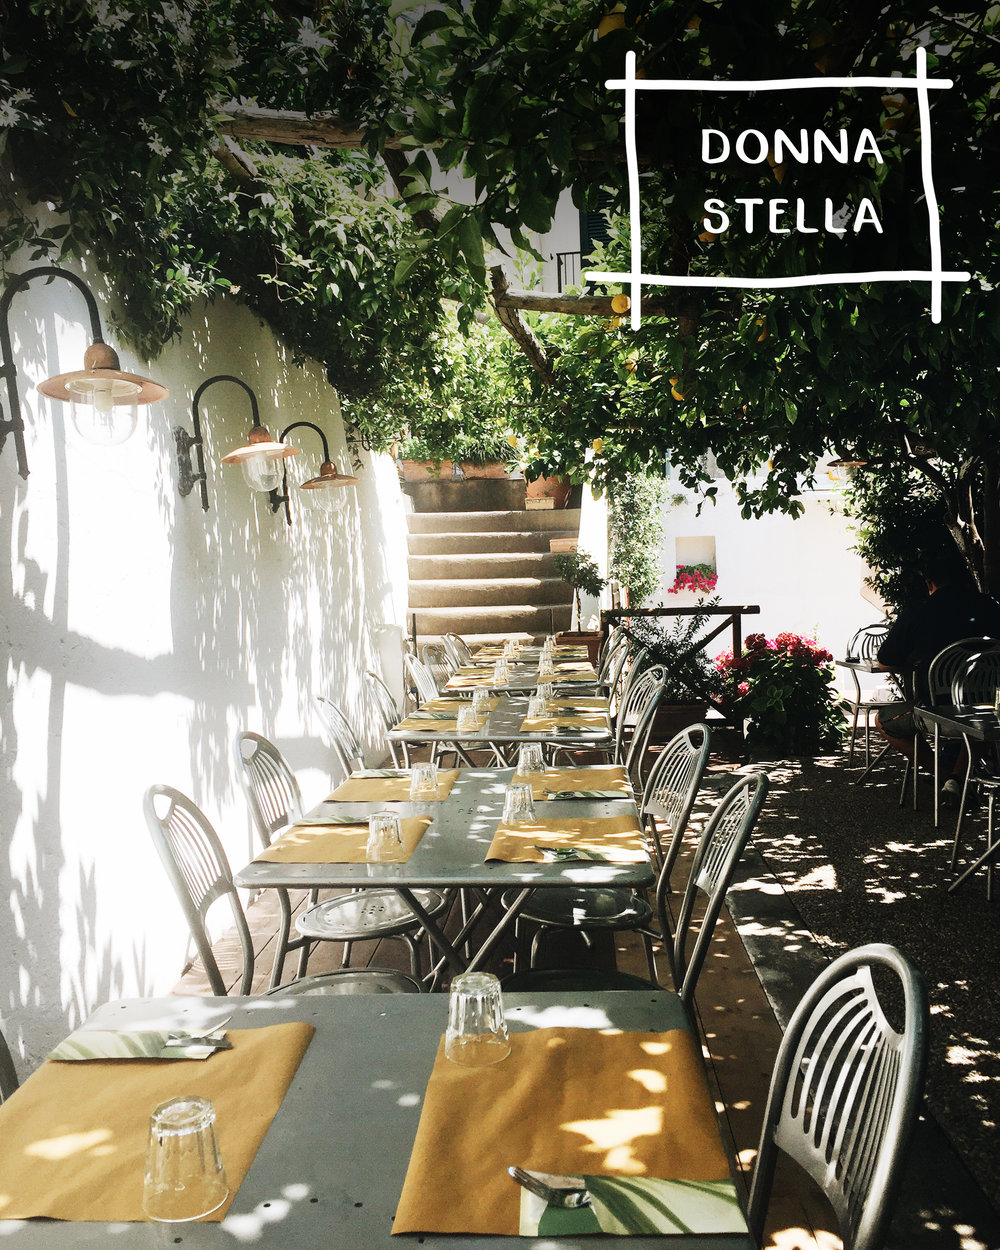 Five Restaurants In Europe For A Unique & Authentic Experience | Donna Stella, Amalfi Italy | Sea of Atlas